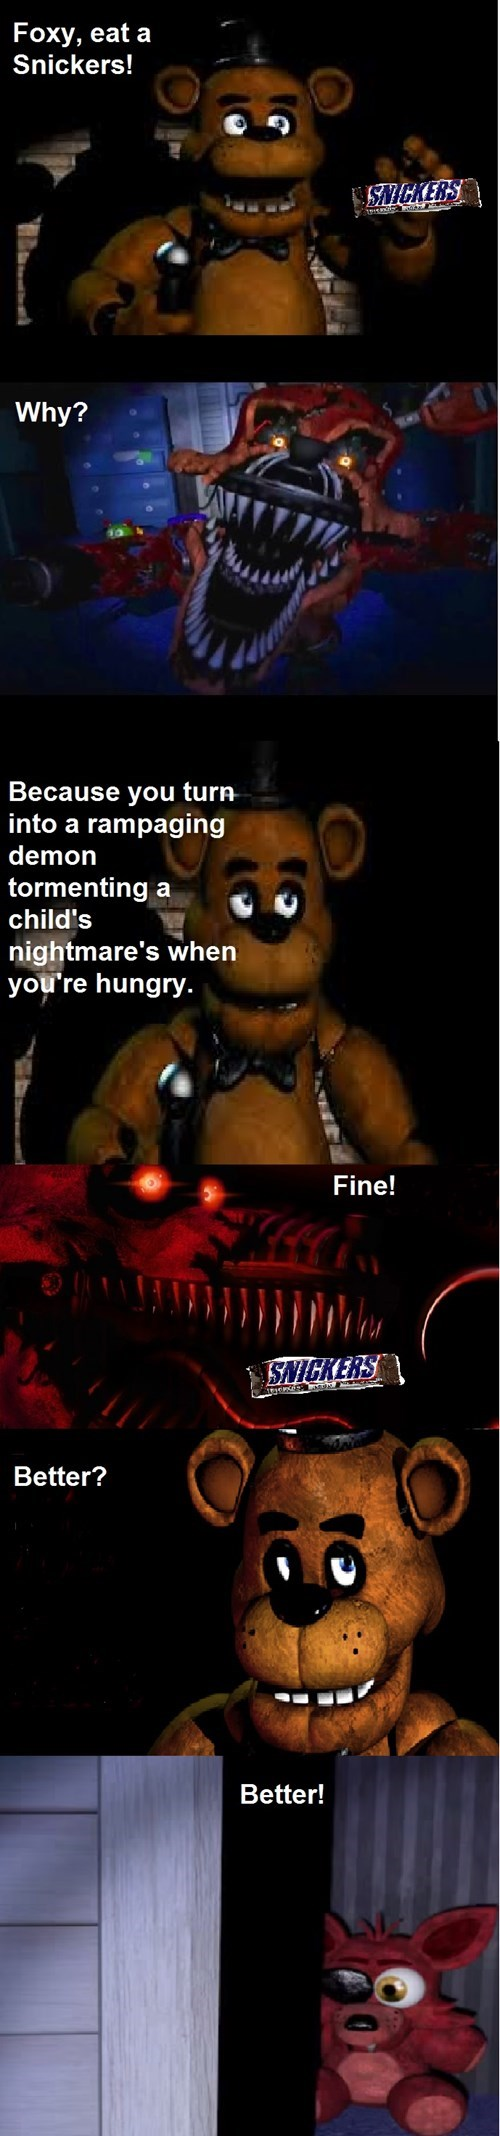 fnaf five nights at freddys snickers. - 8542708480